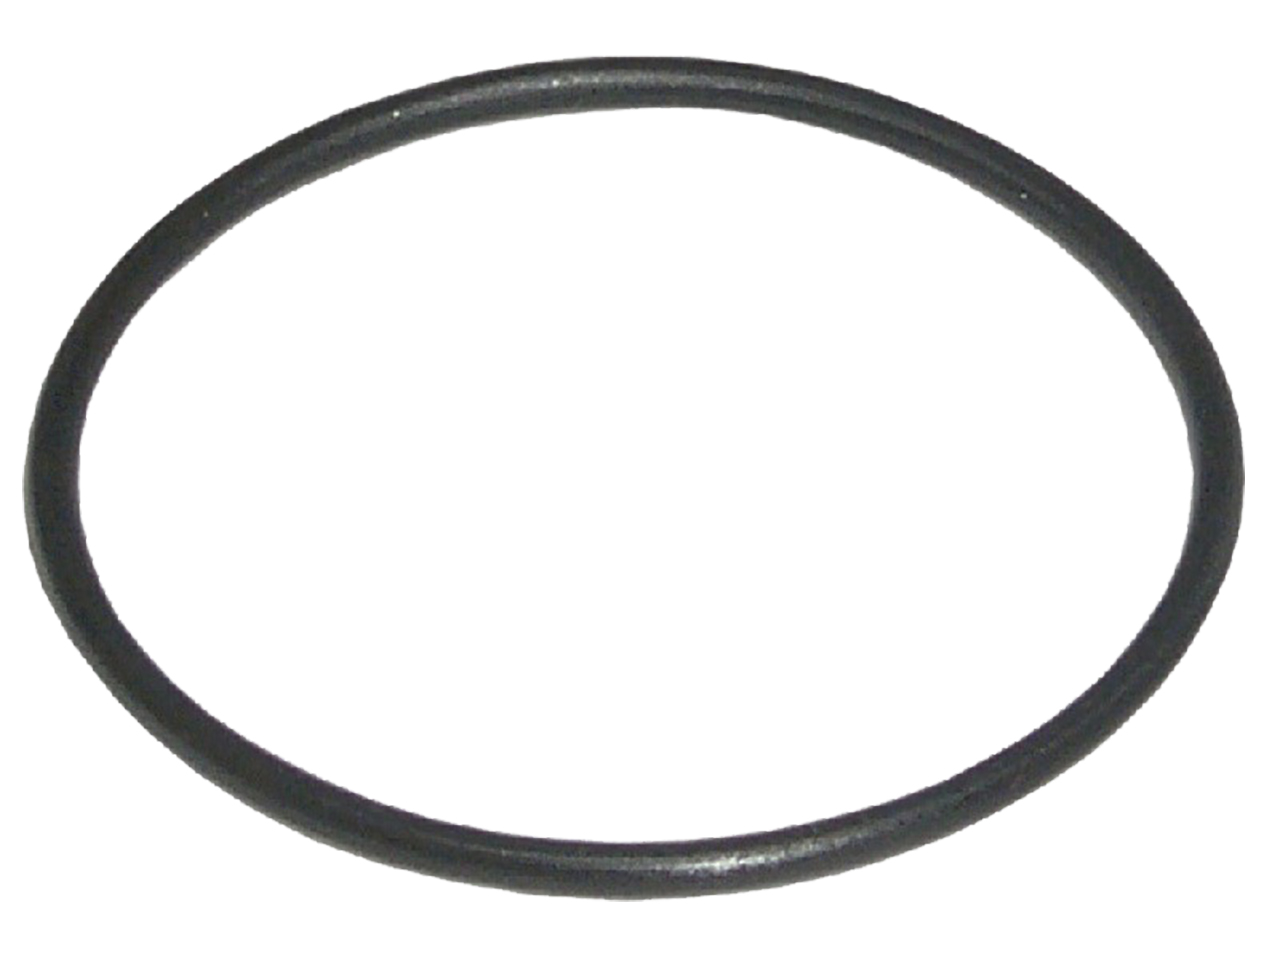 Picture of Howe Ball Joint Cap Replacement O-Ring